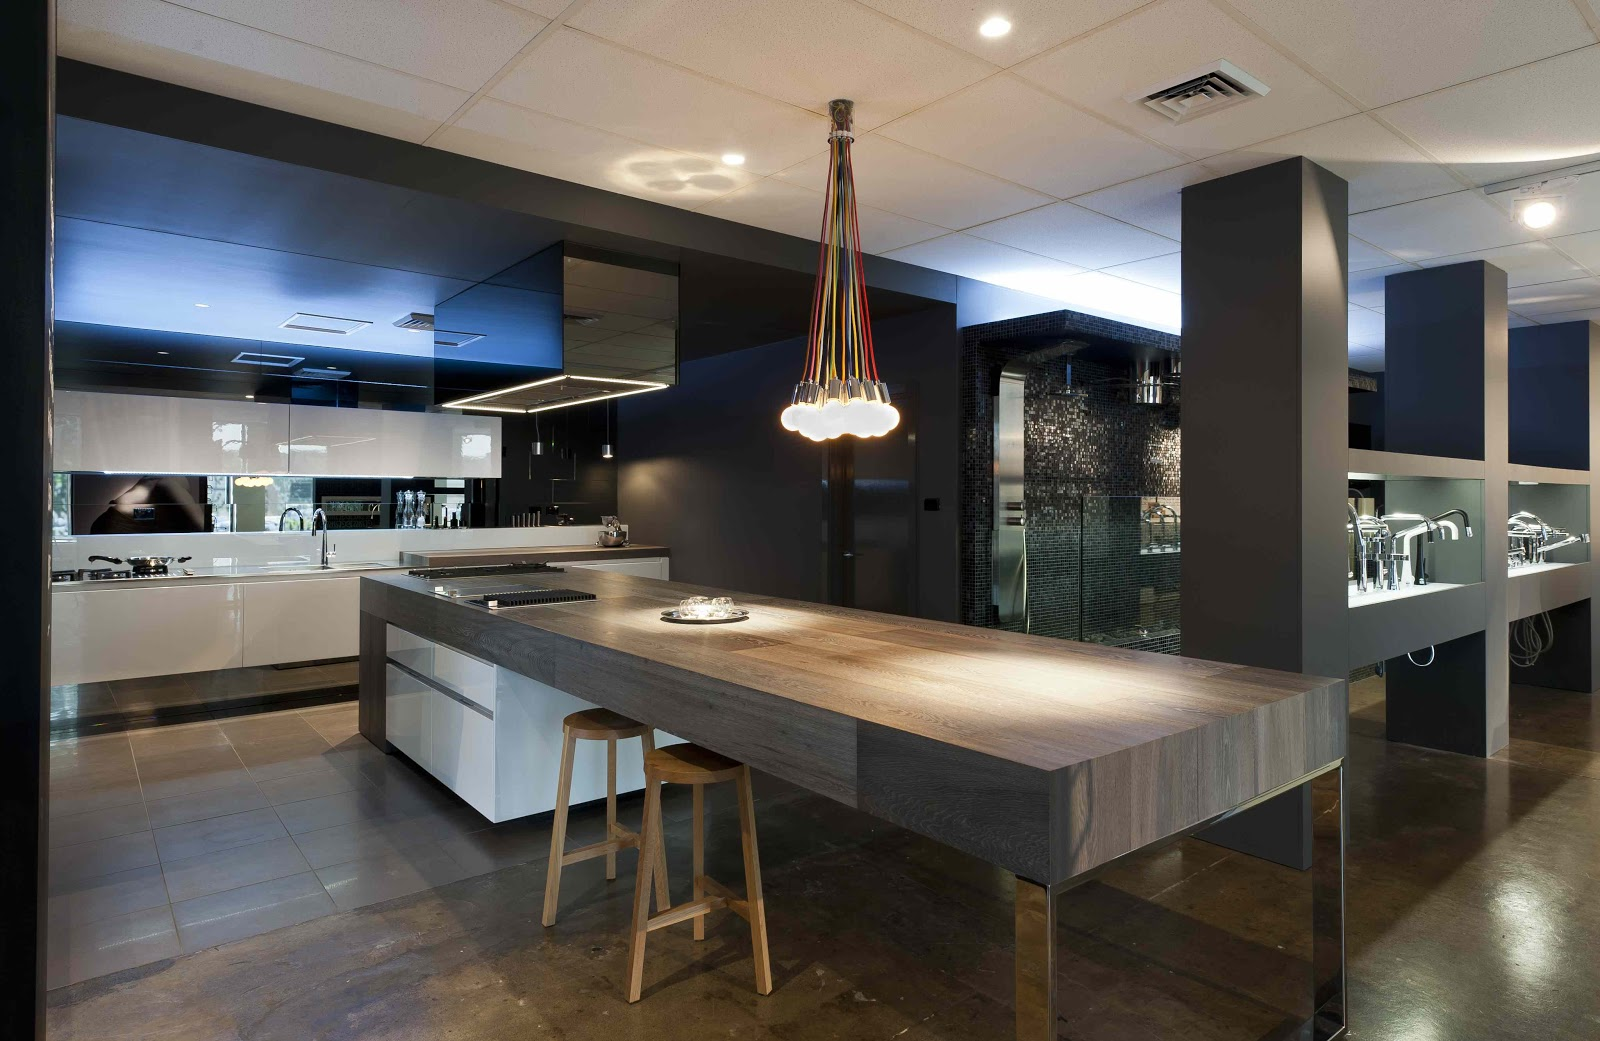 Minosa the cooks kitchen in south melbourne by minosa for Cuisine moderne de luxe